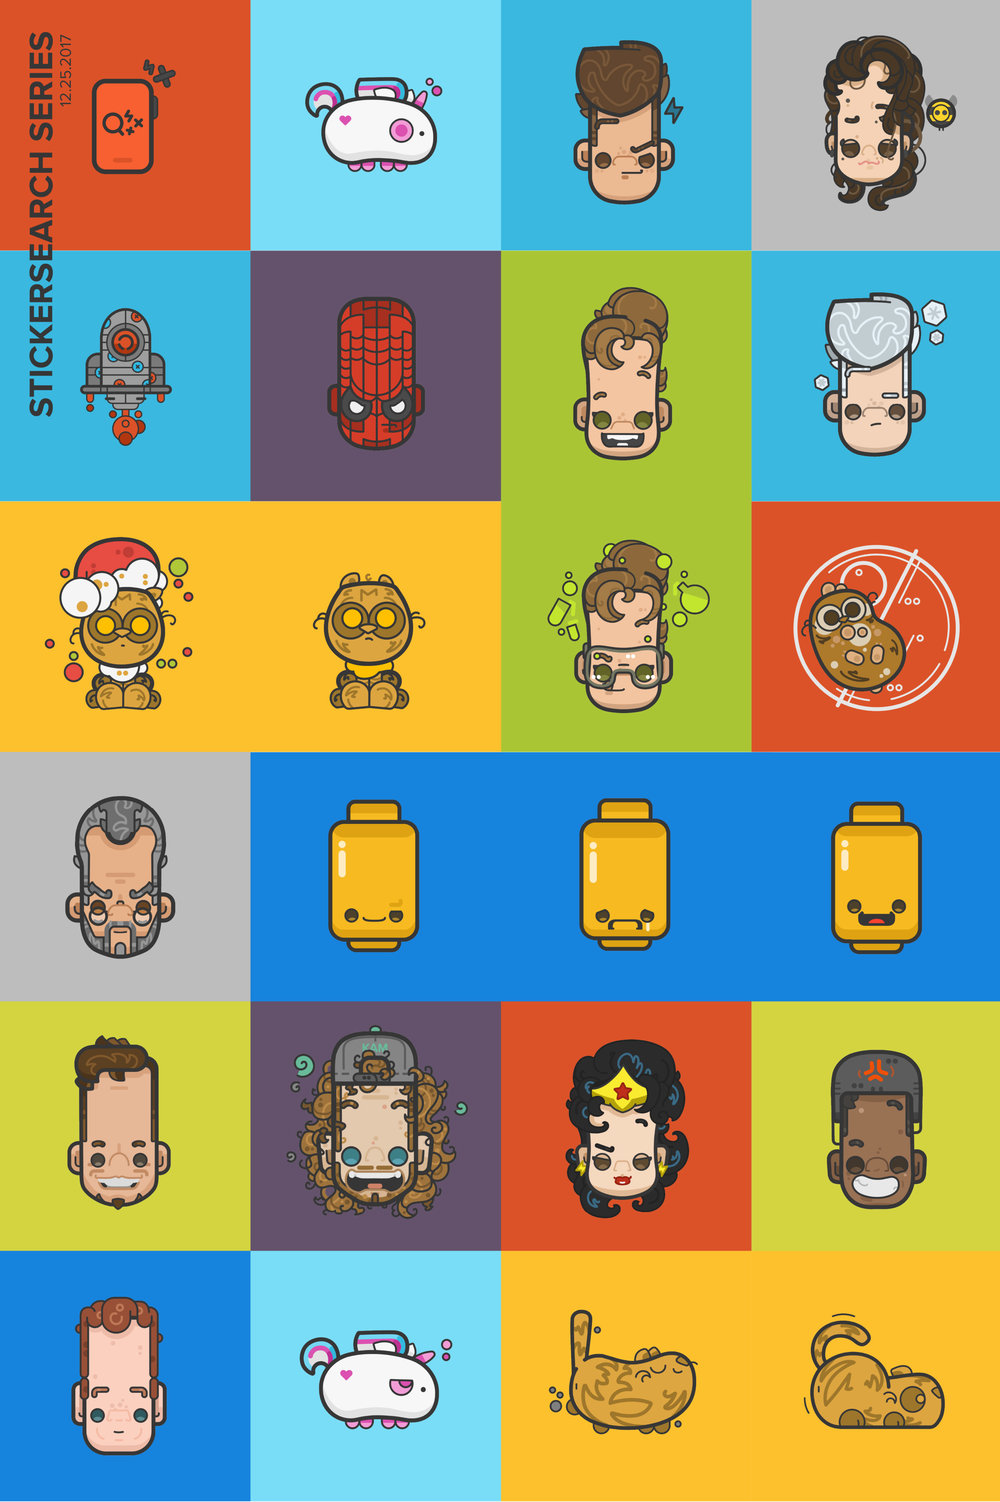 stickergrid-ver1-01(2).jpg